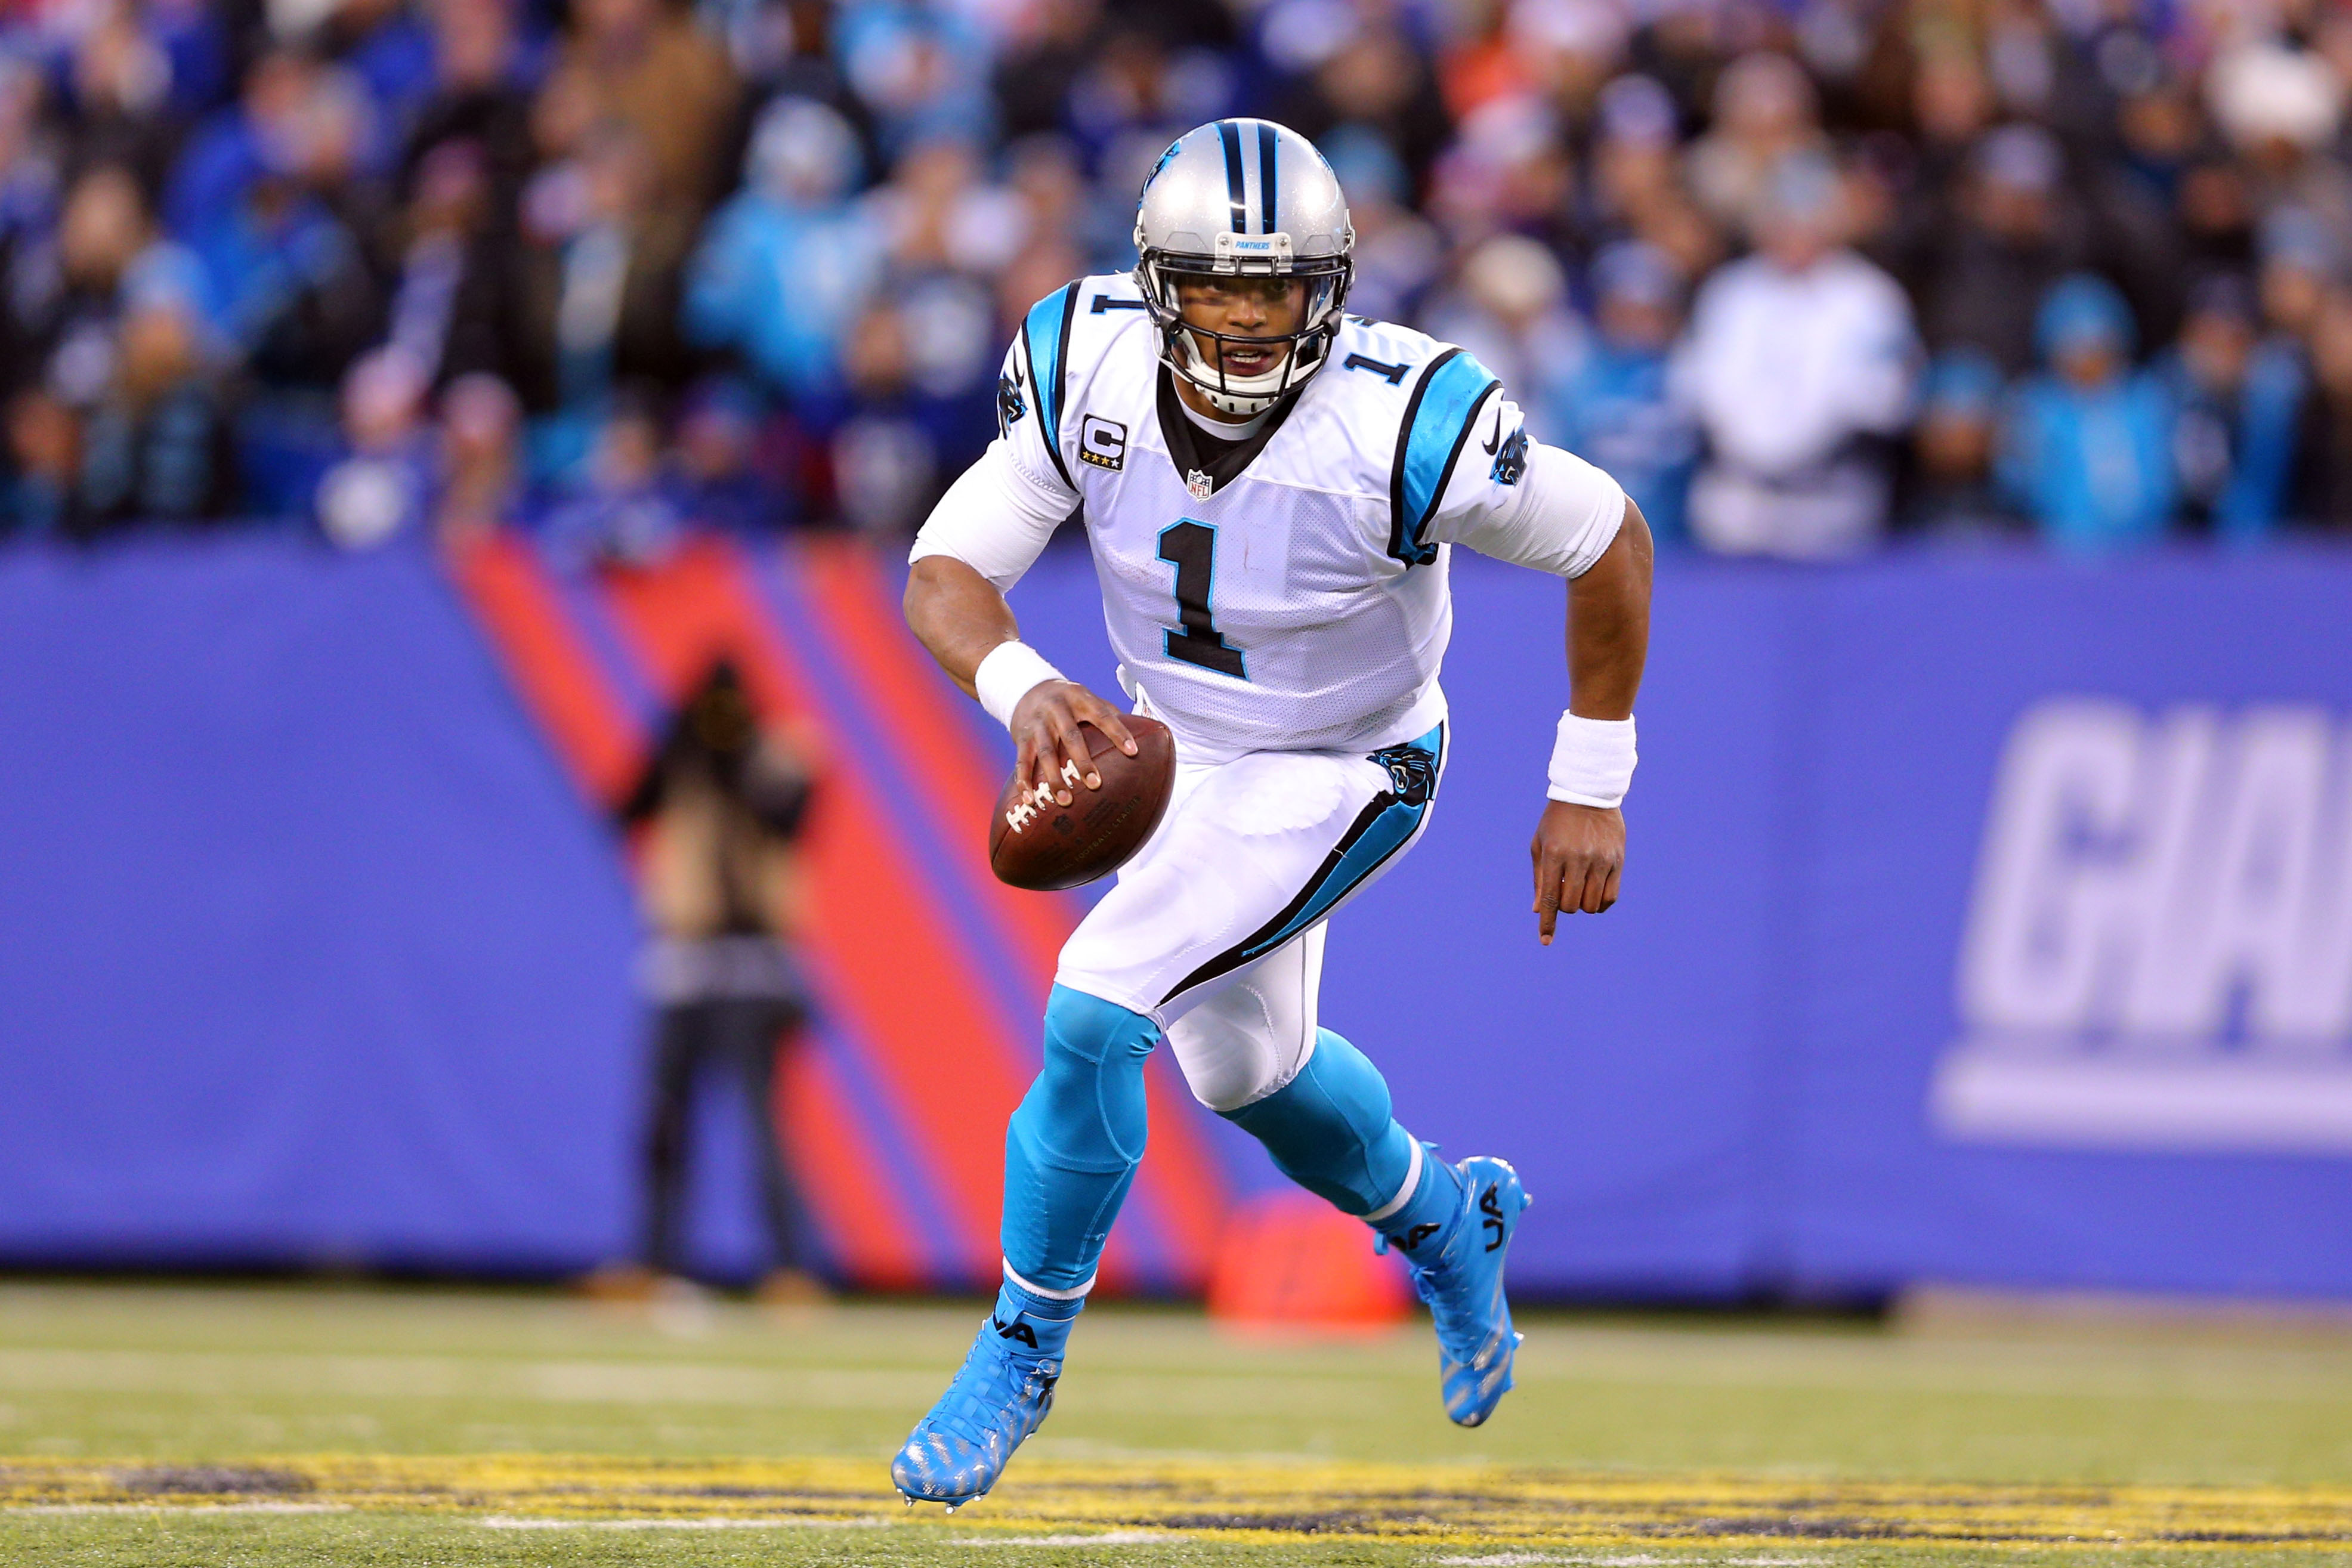 Cam Newton and the Panthers look to continue their perfect season.